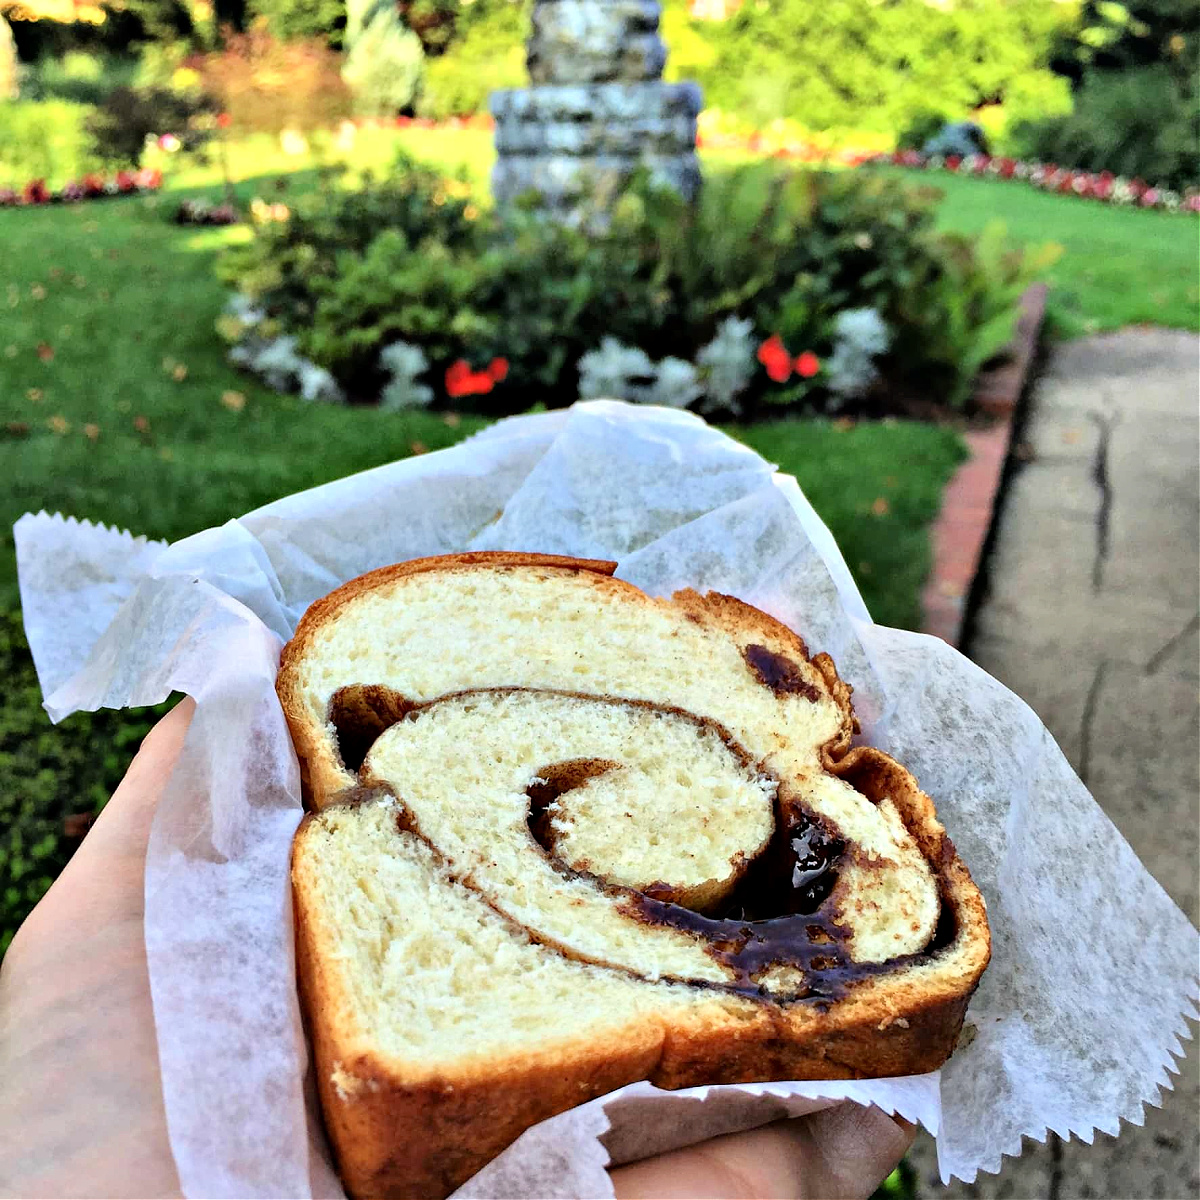 Slice of fresh baked cinnamon bread on parchment paper.